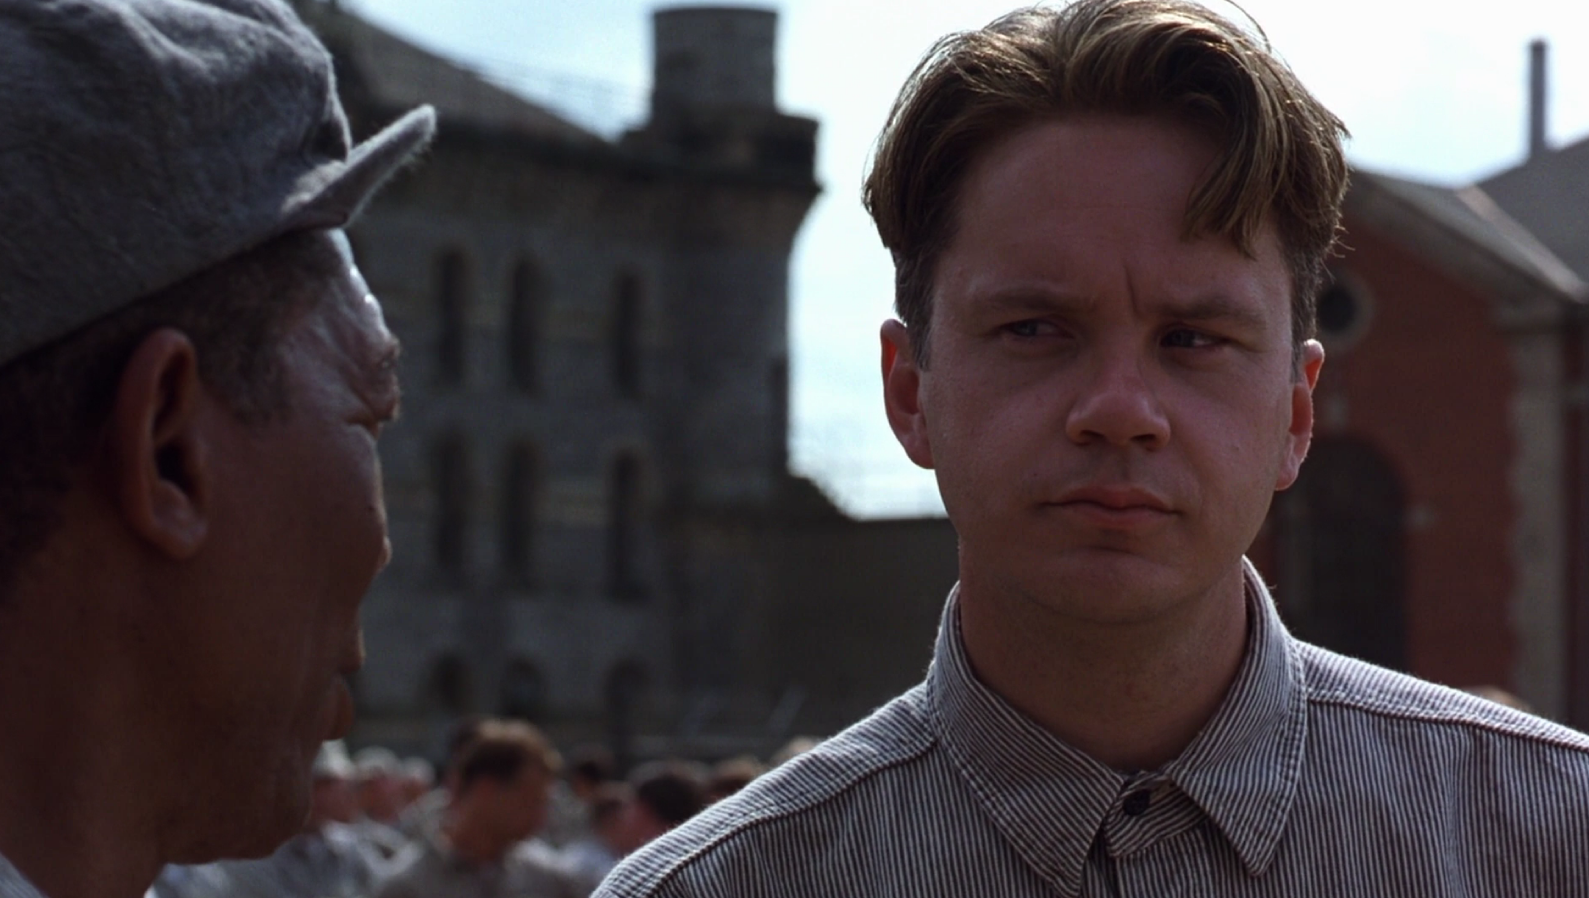 andy dufresne shawshank redemption Analysis of the shawshank redemption copyright 2000 andy box spoiler alert: the following comments discuss the ending of the movie i highly recommend.